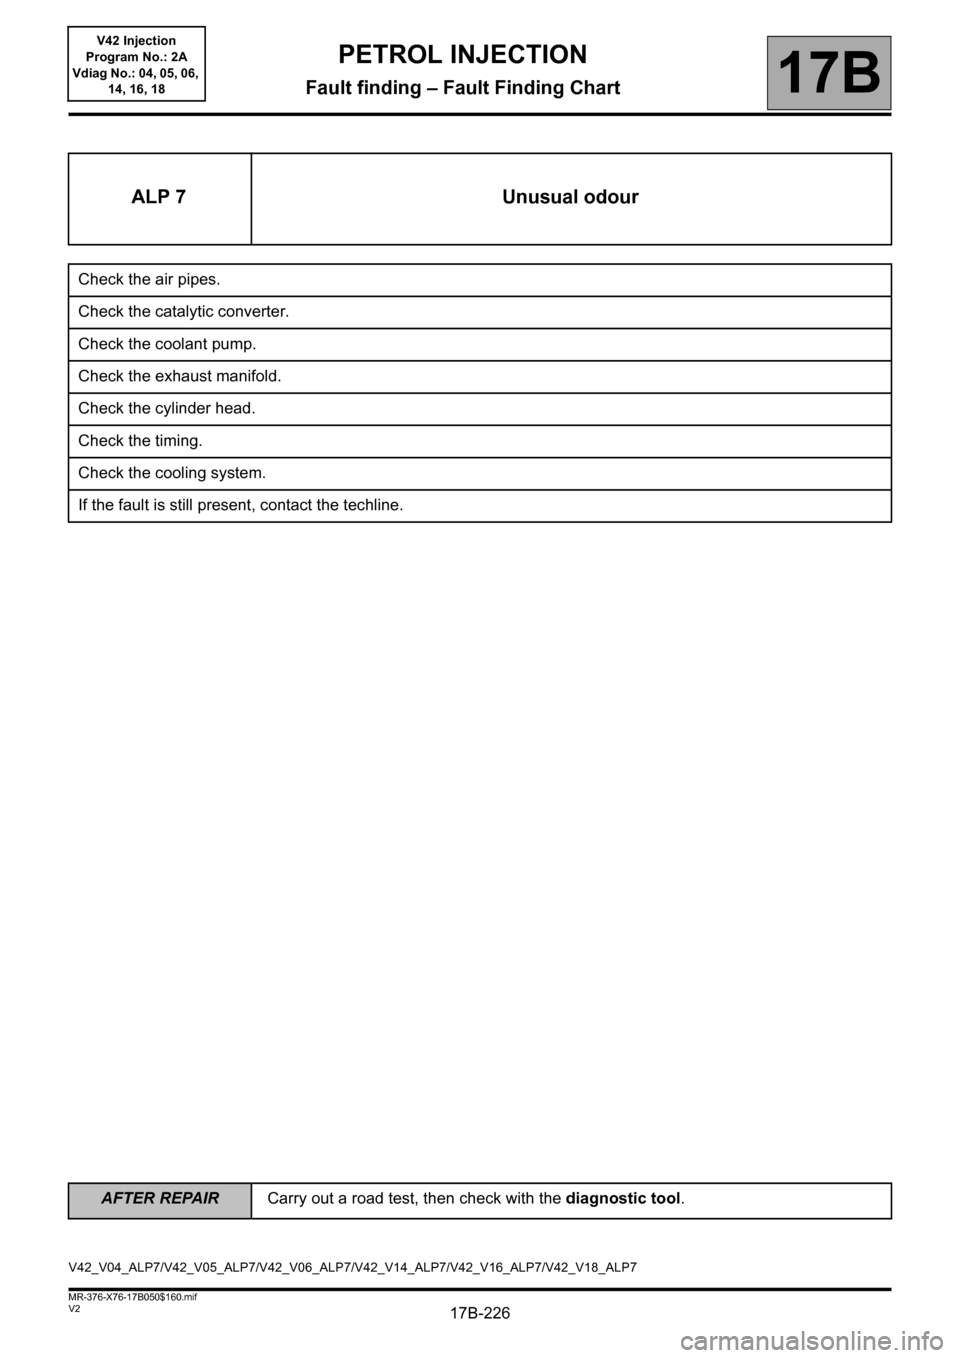 RENAULT KANGOO 2013 X61 / 2.G Petrol V42 Injection Workshop Manual, Page 226